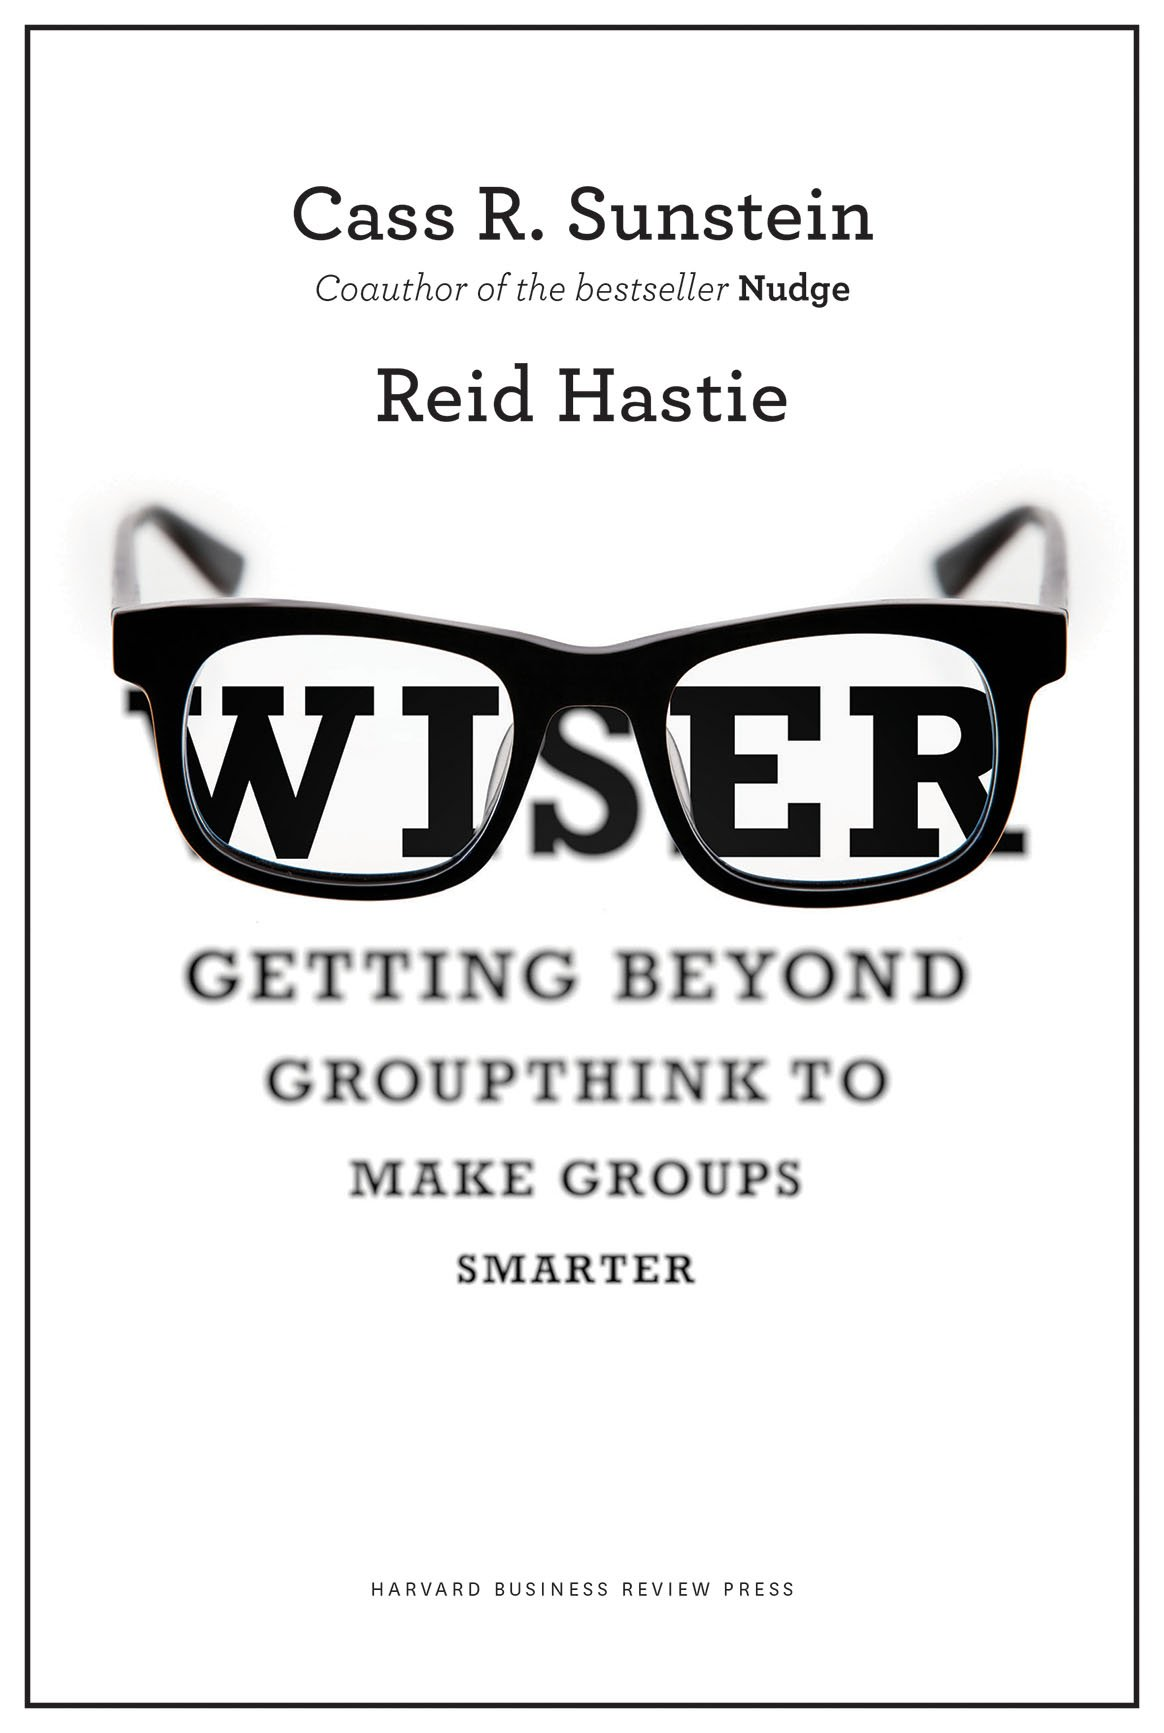 Wiser Getting Beyond Groupthink To Make Groups Smarter Amazonco Group Shop Cheap From China Suppliers At Alwaysbetter On Cass R Sunstein Reid Hastie 0884296004566 Books